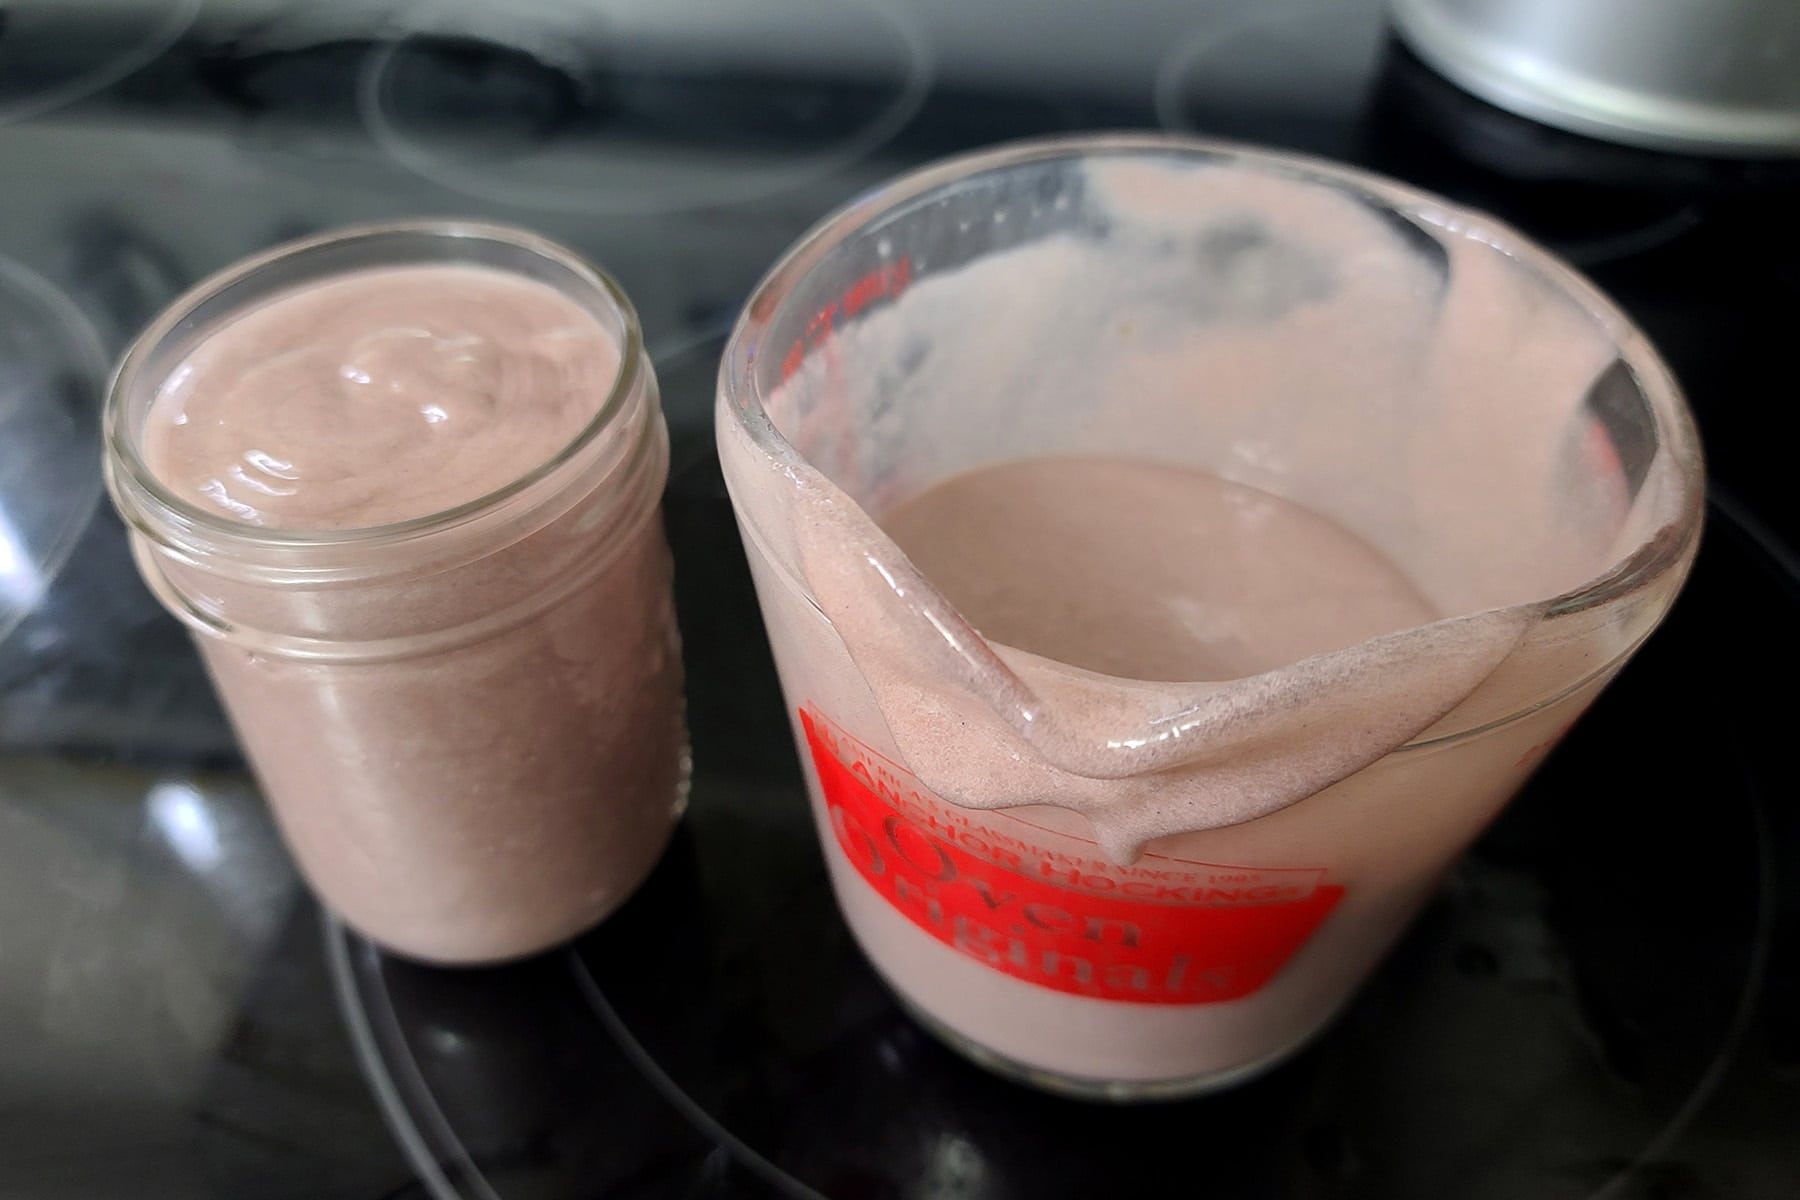 A jar of grape curd next to a glass measuring cup of fresh curd.